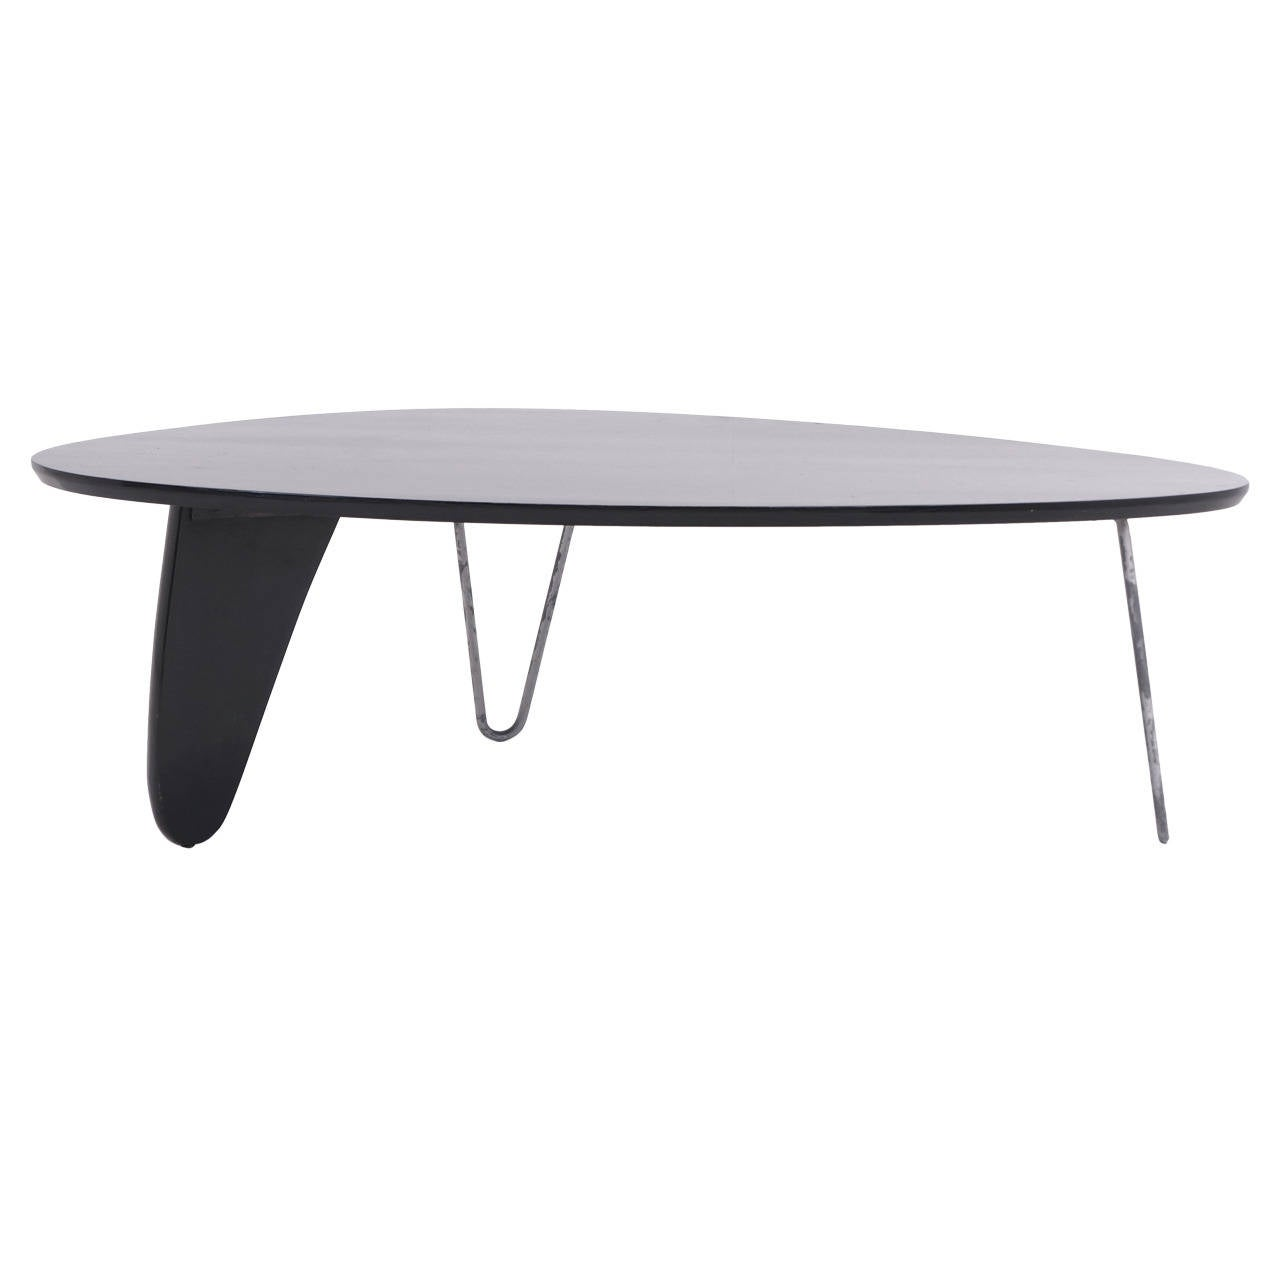 Very Rare Isamu Noguchi Rudder Coffee Table Model In 52 Herman Miller 1944 For Sale At 1stdibs